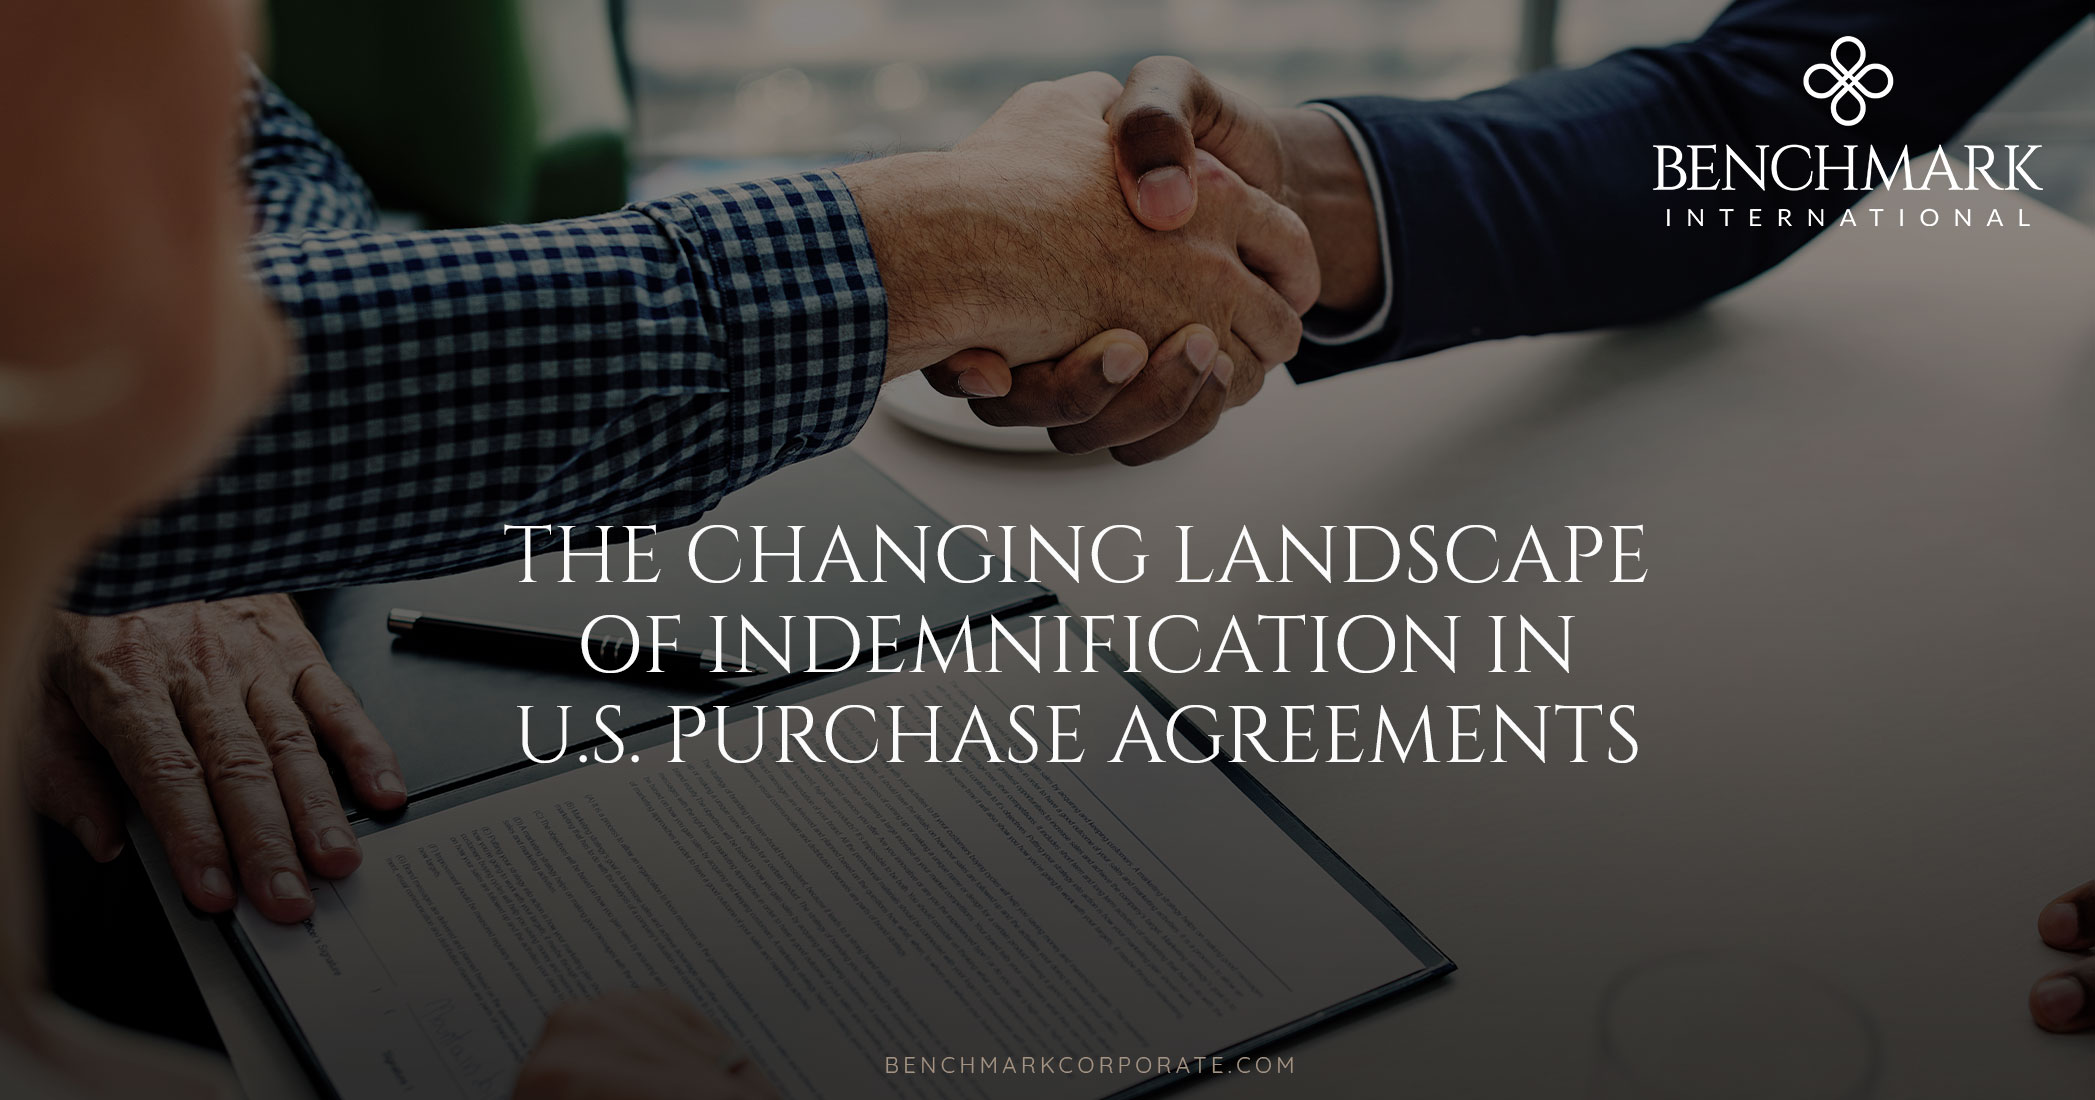 The Changing Landscape of Indemnification in U.S. Purchase Agreements